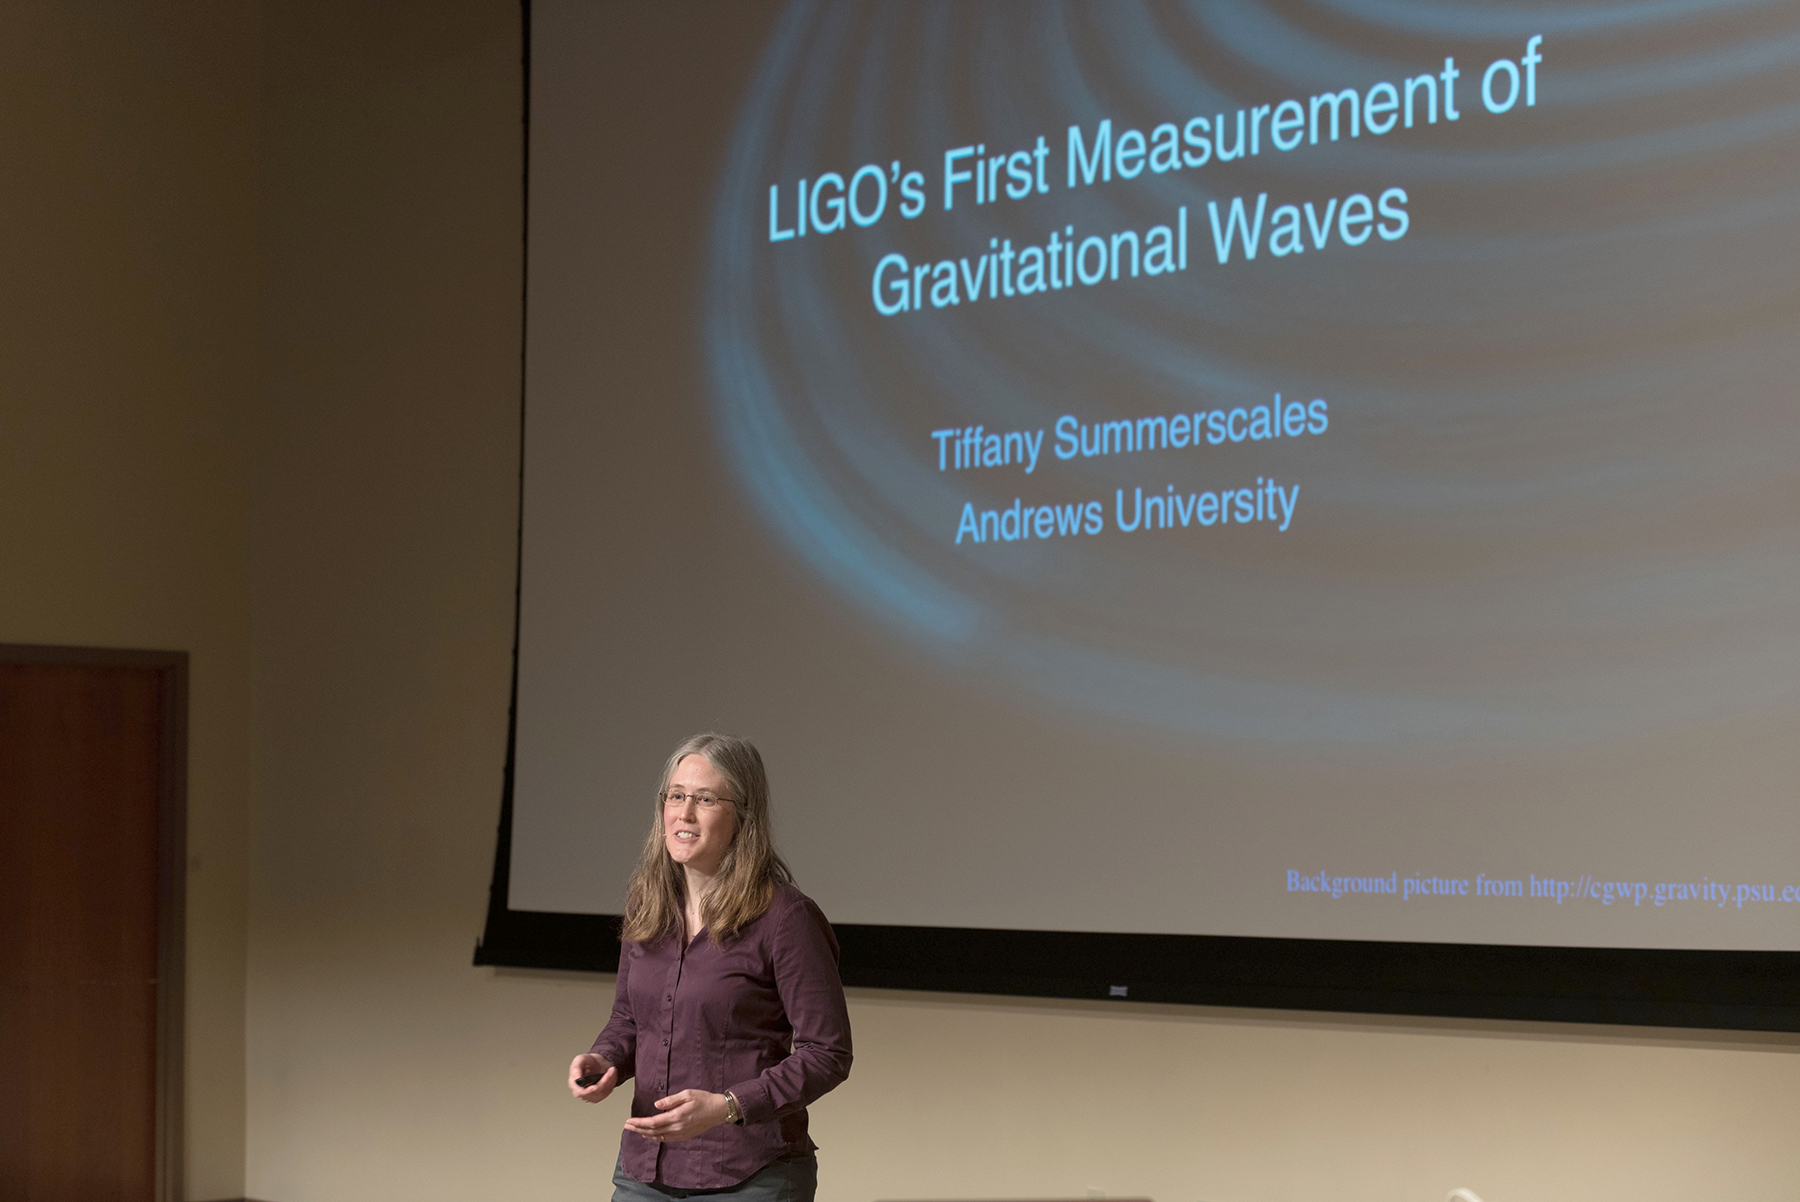 Summerscales presenting on LIGO